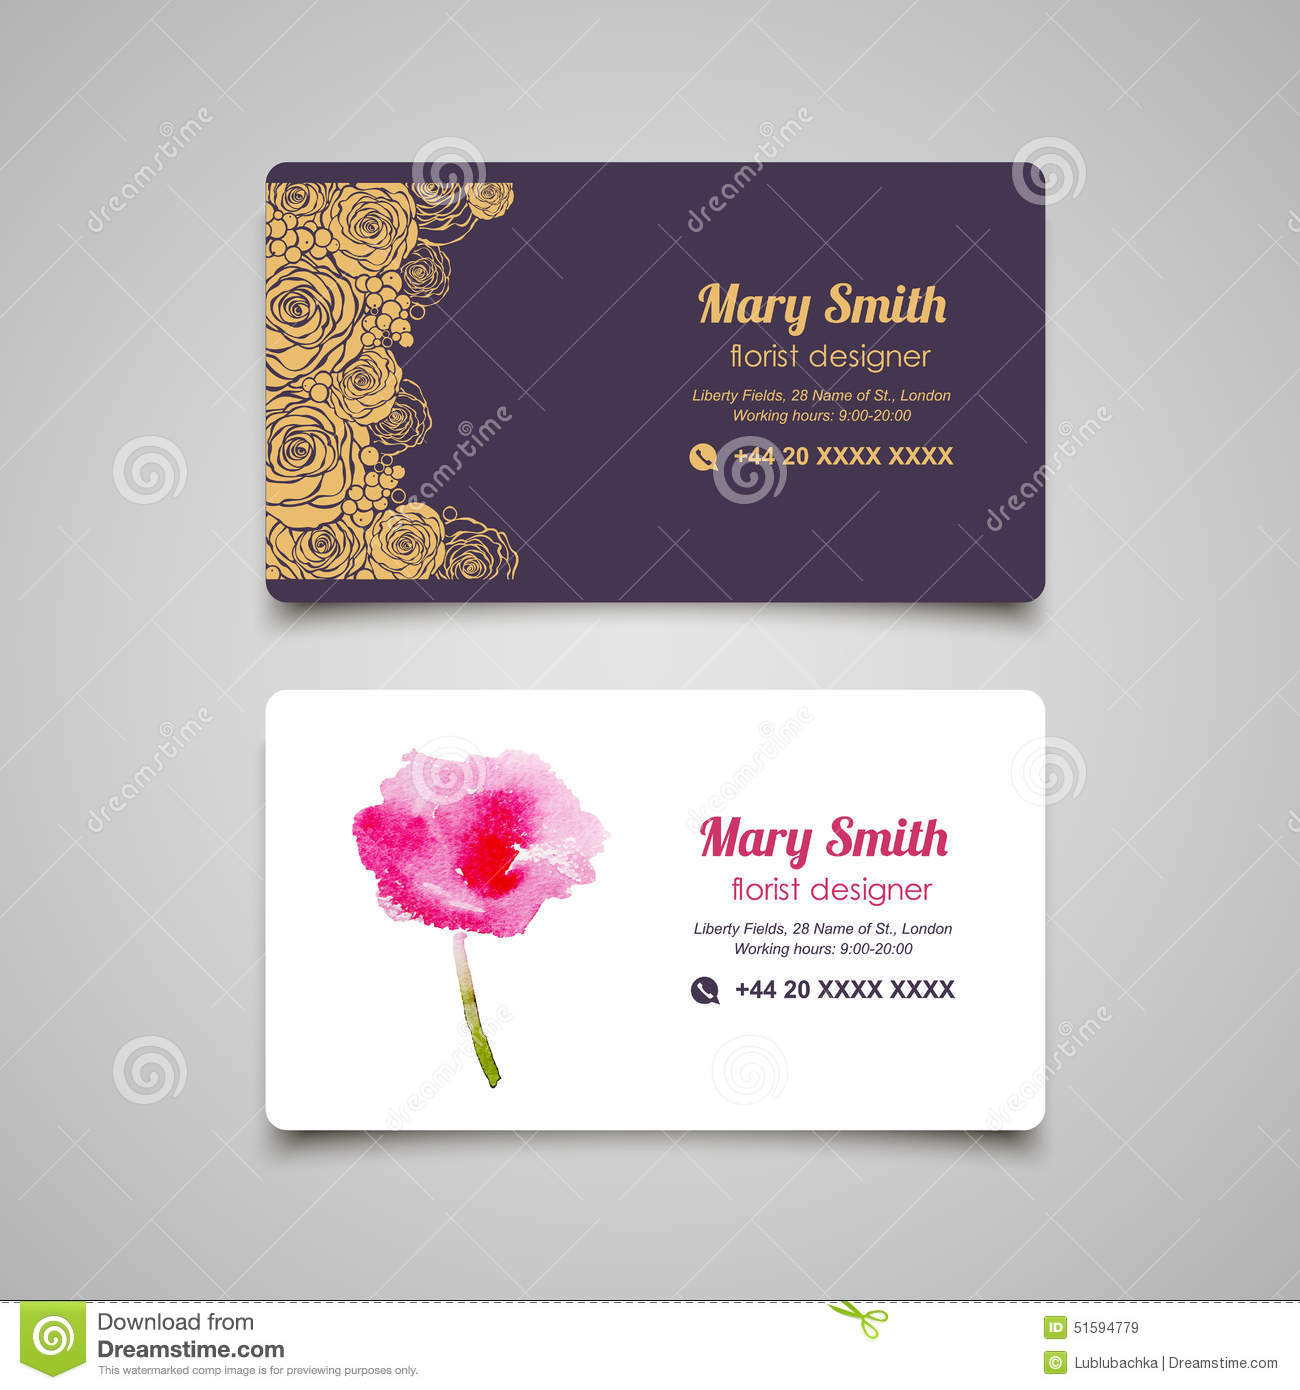 Florist business card vector design templates set stock vector florist business card vector design templates set cheaphphosting Gallery